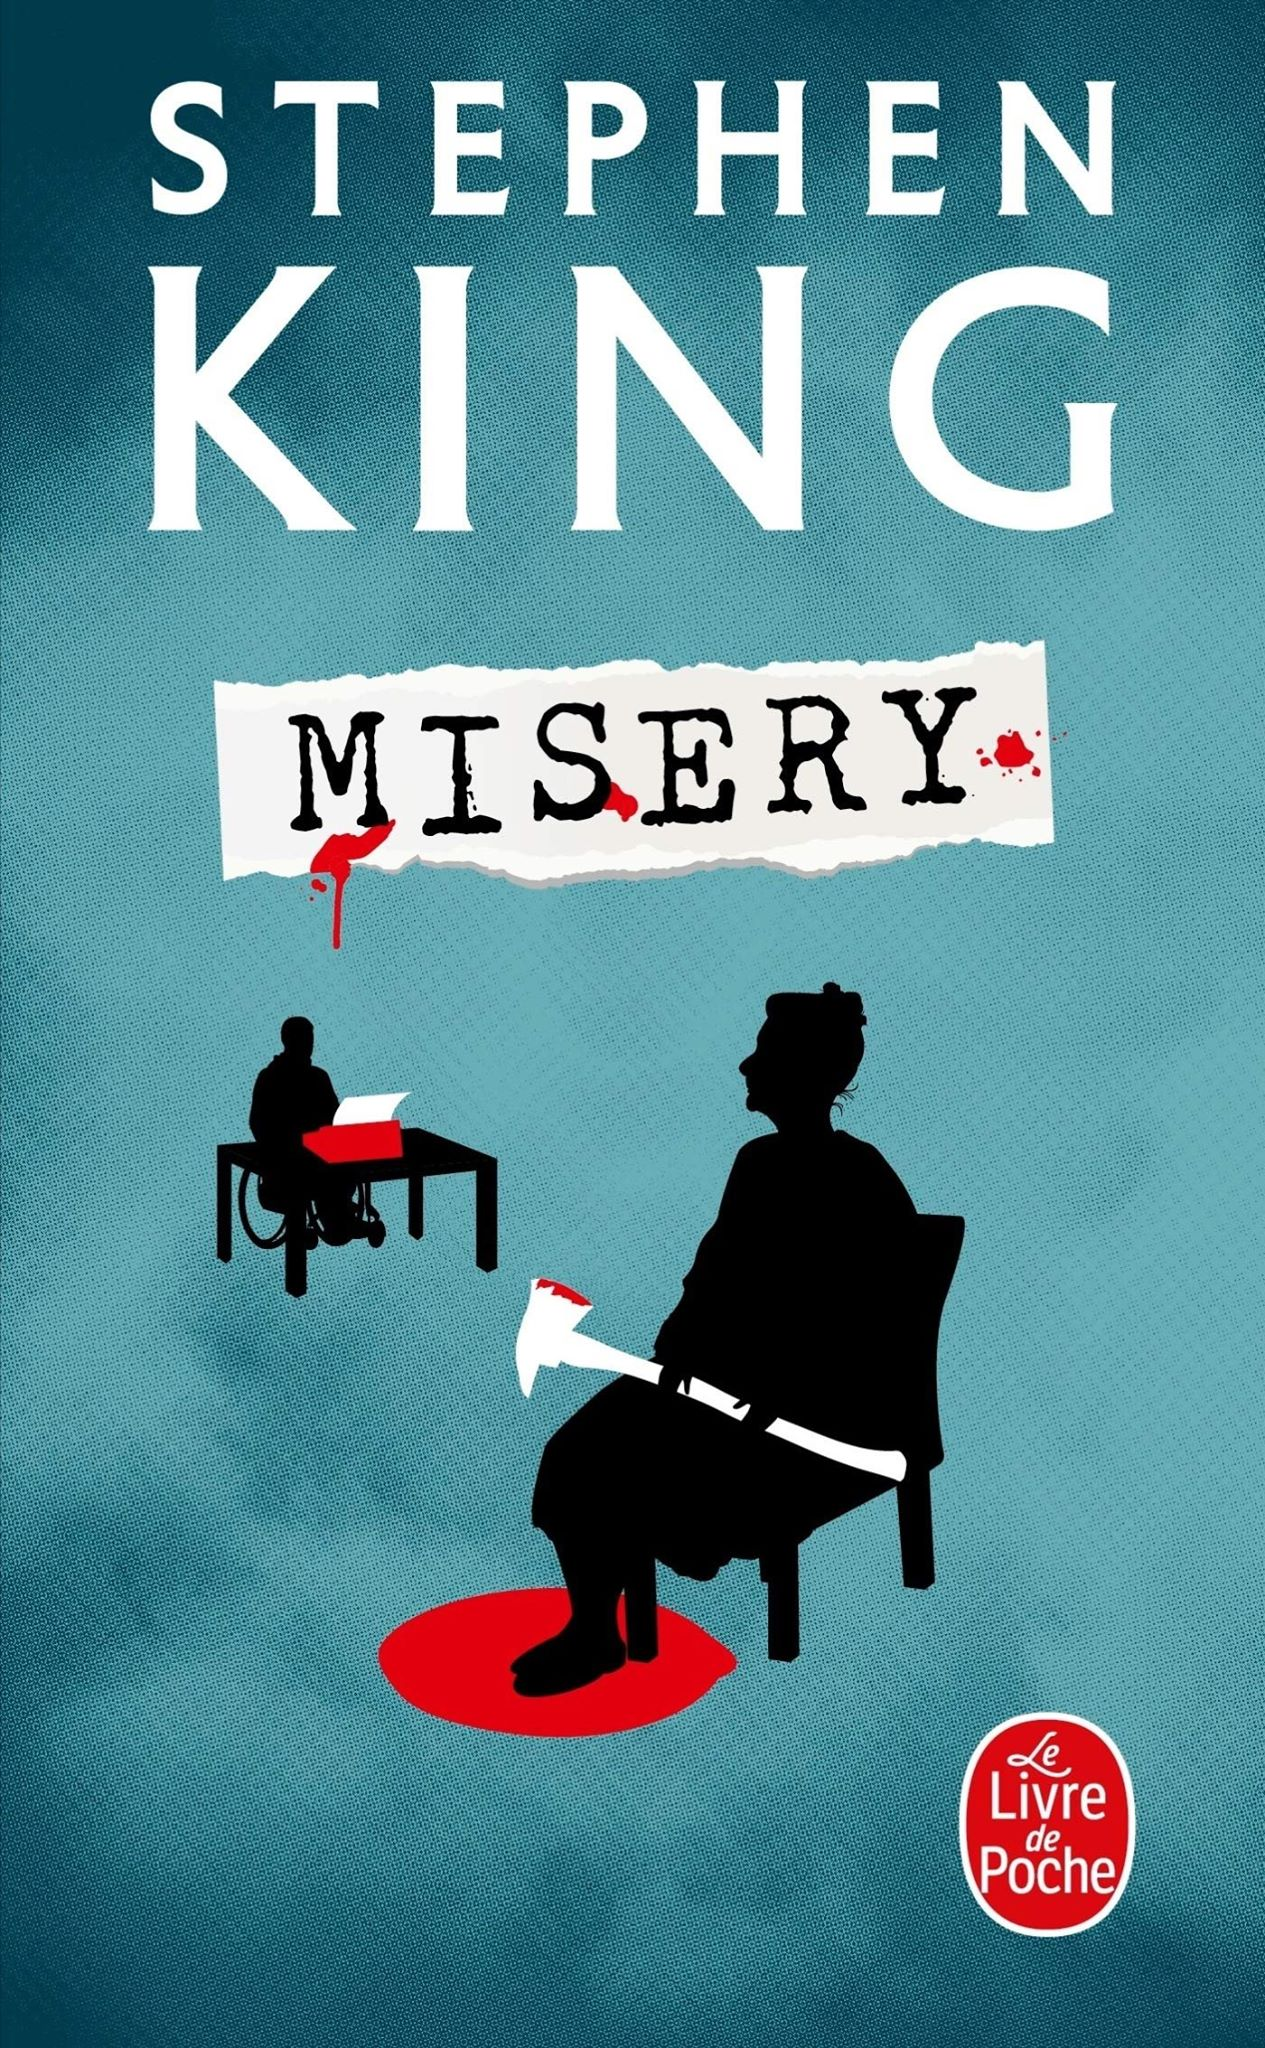 Stephenking Lelivredepoche Reedition 2020 Misery